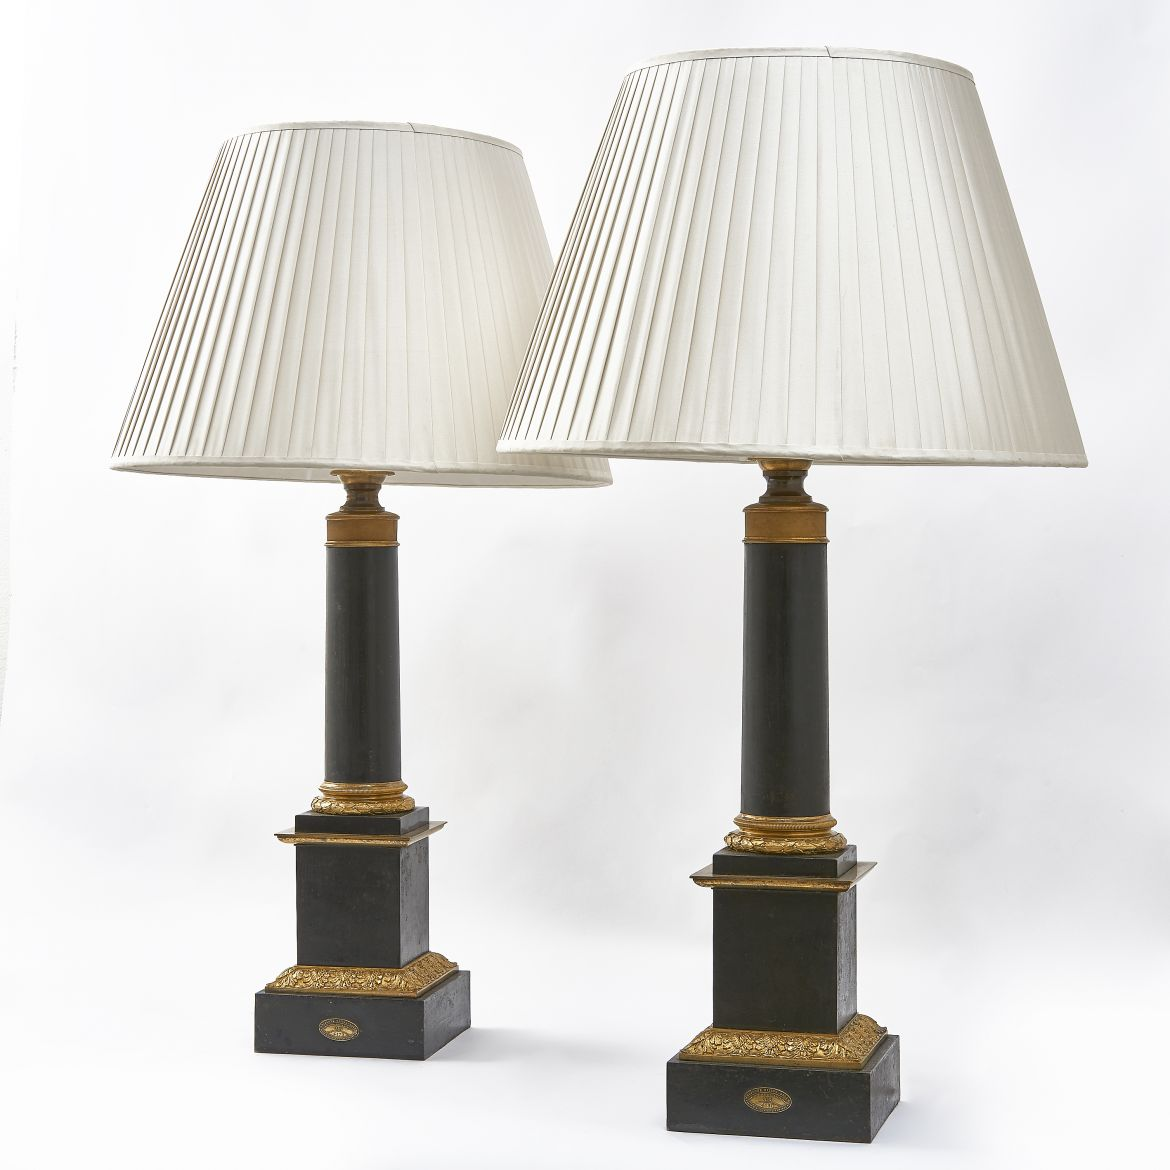 French Empire Lamps